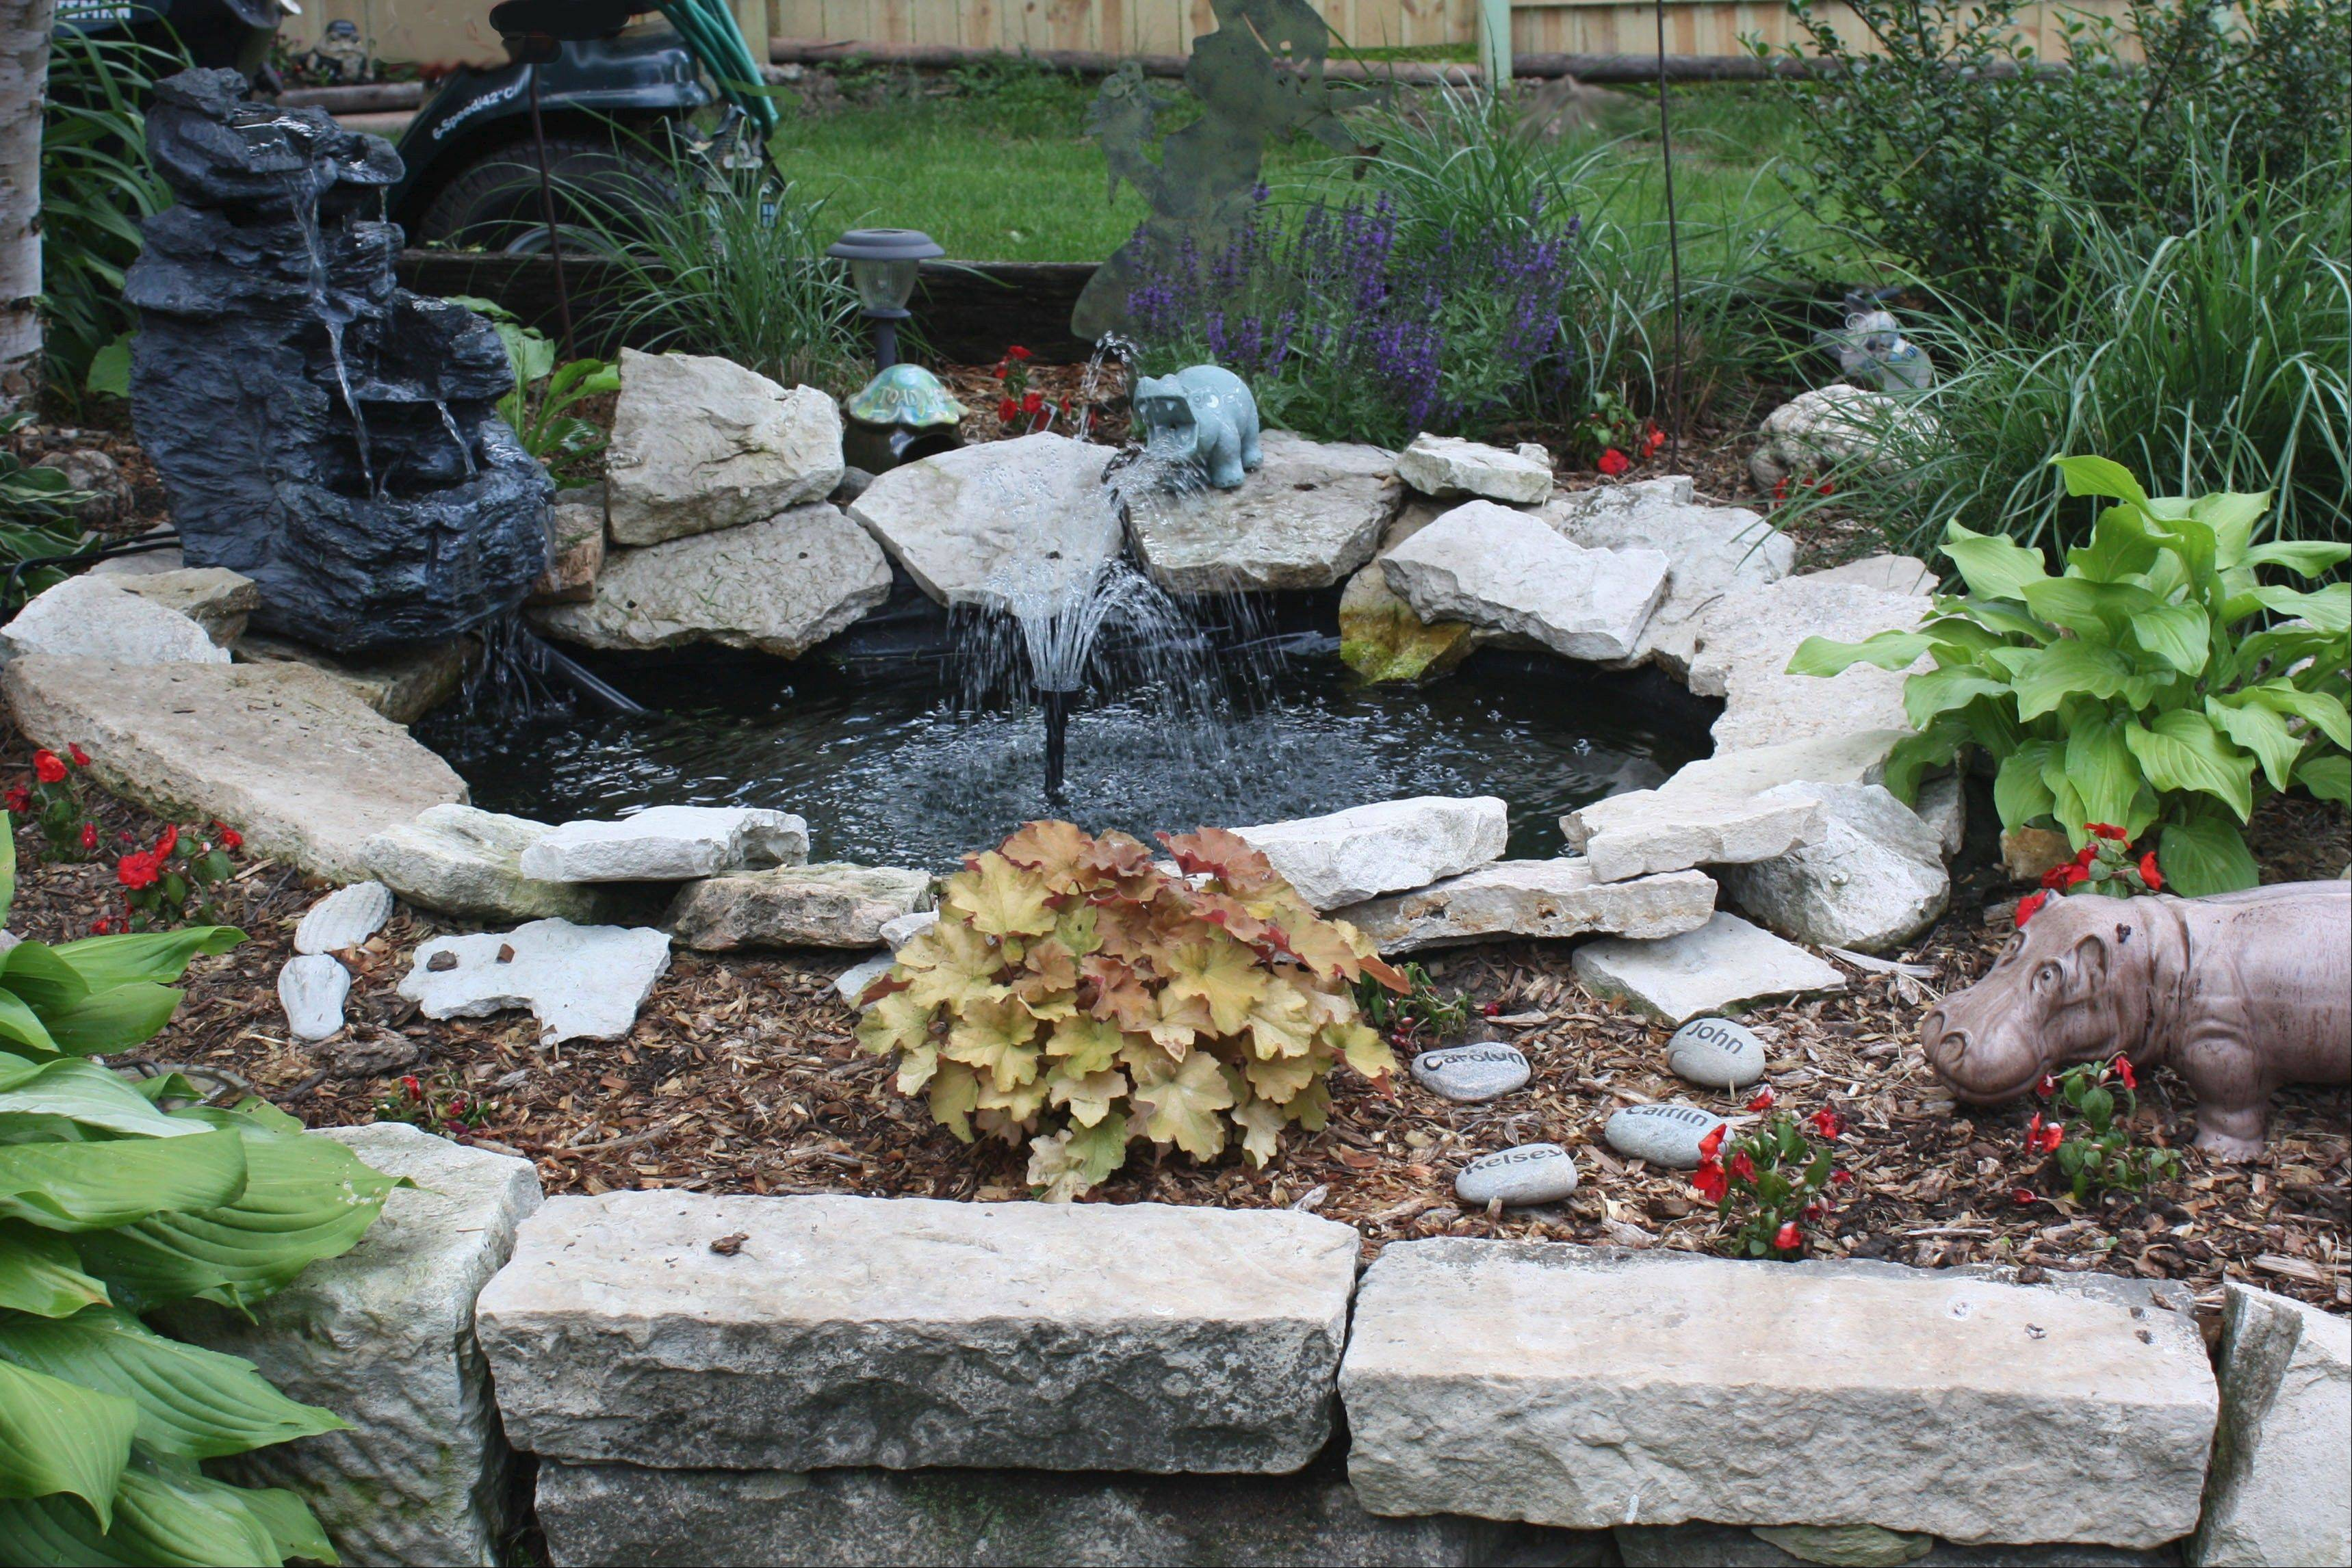 The Kanthack garden is a family affair with the couple and Carolyn's mother all pitching in their talents. The pond's tranquillity belies all the couple's work that went into creating it out of a hard clay soil.